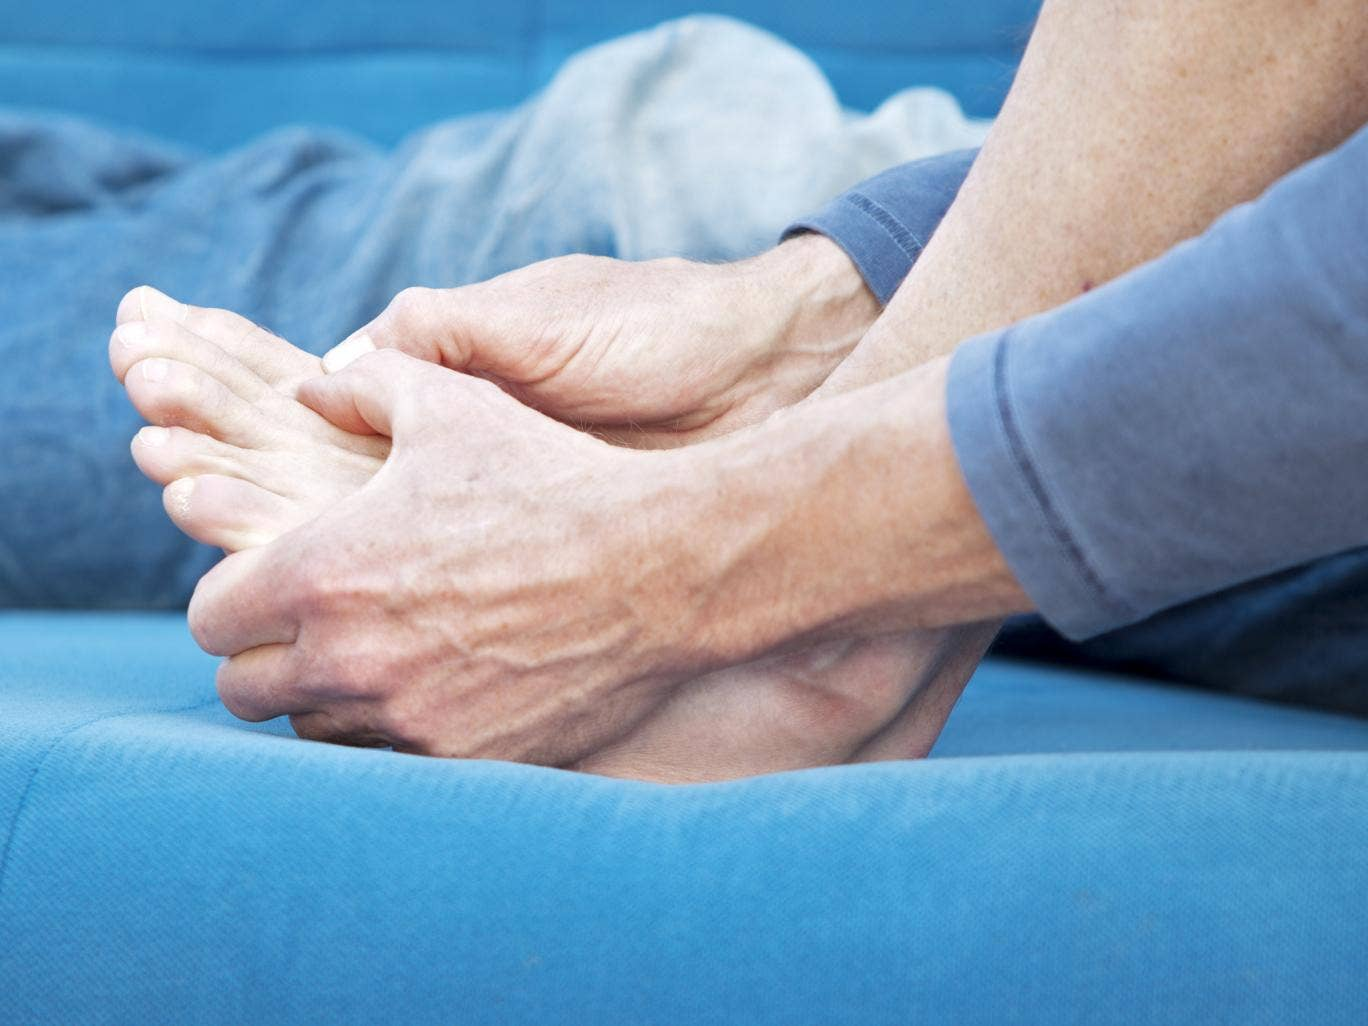 Gout is caused by a the formation of sodium urate crystals in the joints